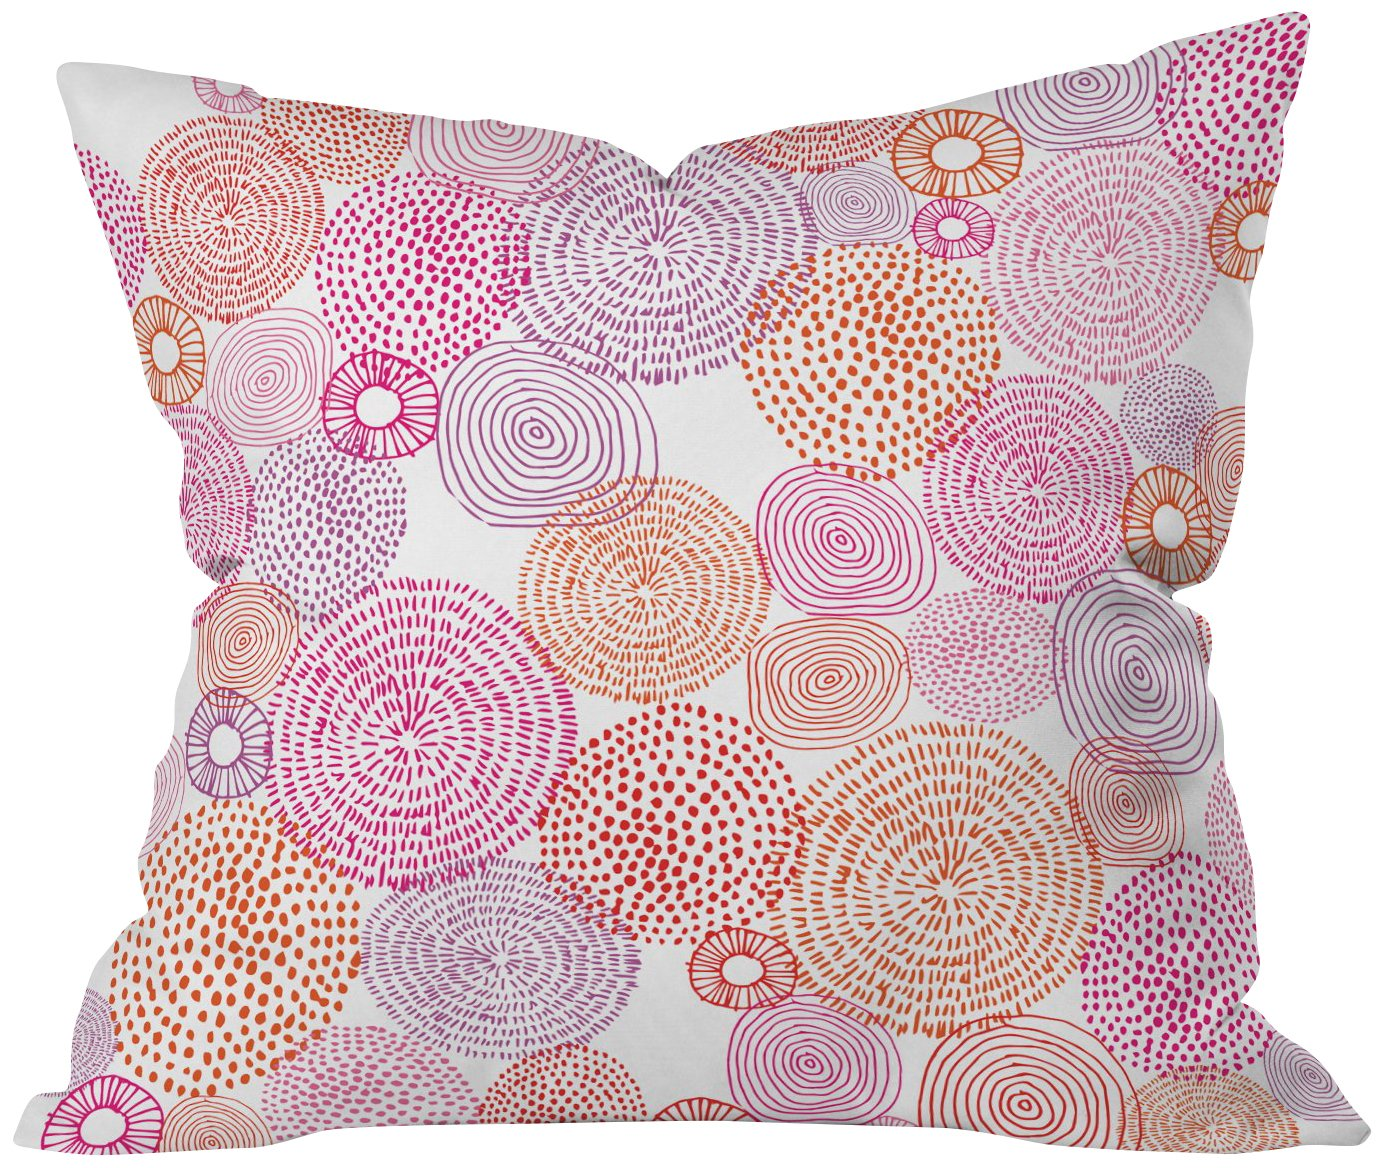 Deny Designs Camilla Foss Circles In Colours I Throw Pillow 20 X 20 Amazon In Home Kitchen